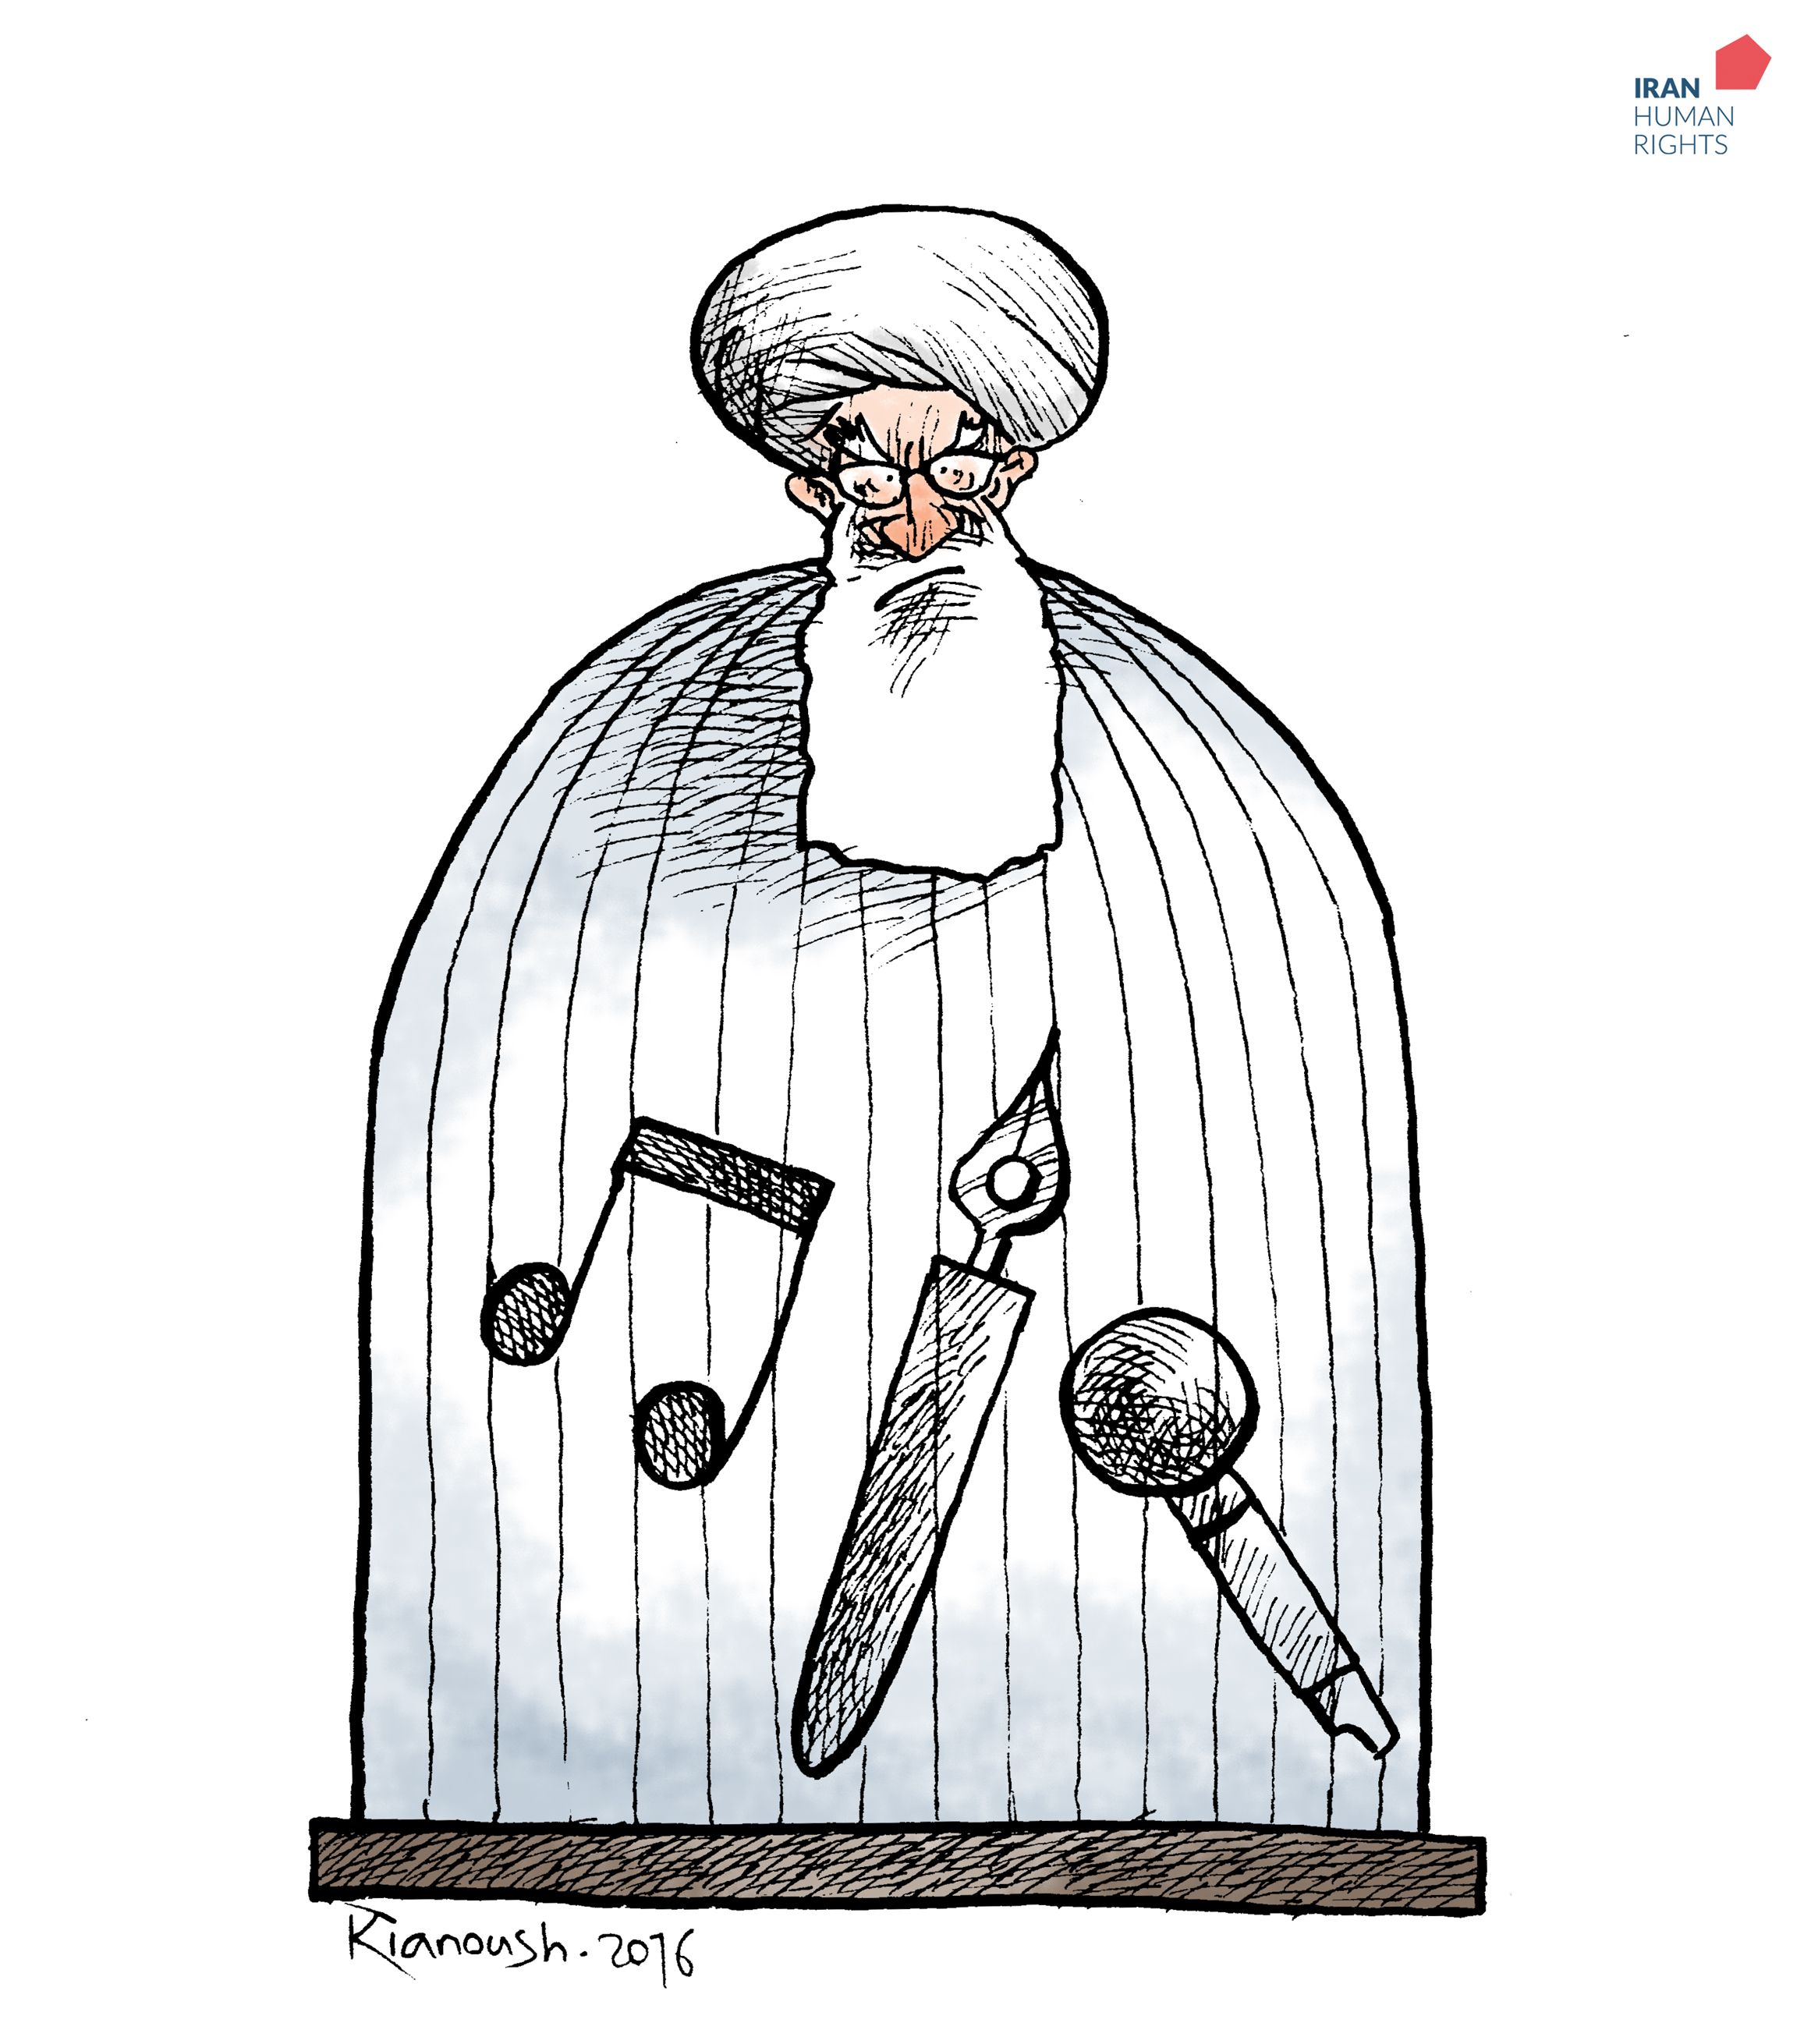 Ayatollahs think they can stop the art by putting artists in prison